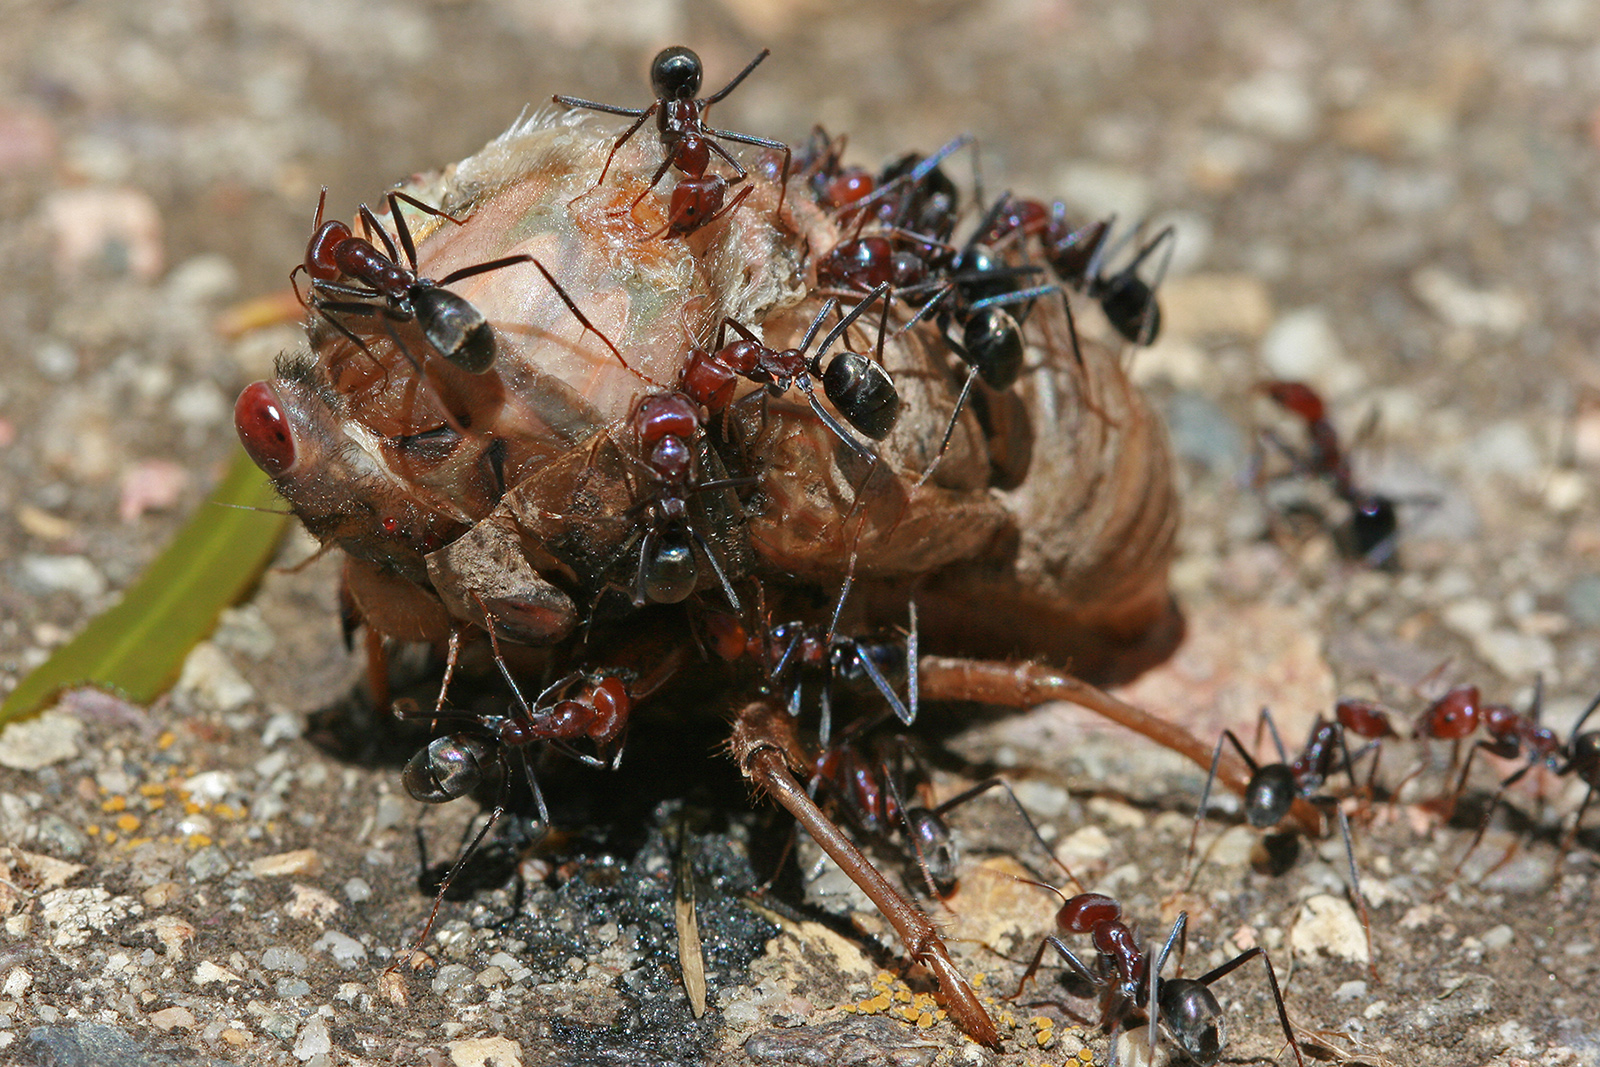 Description ants eating cicada jjron 22 11 2009